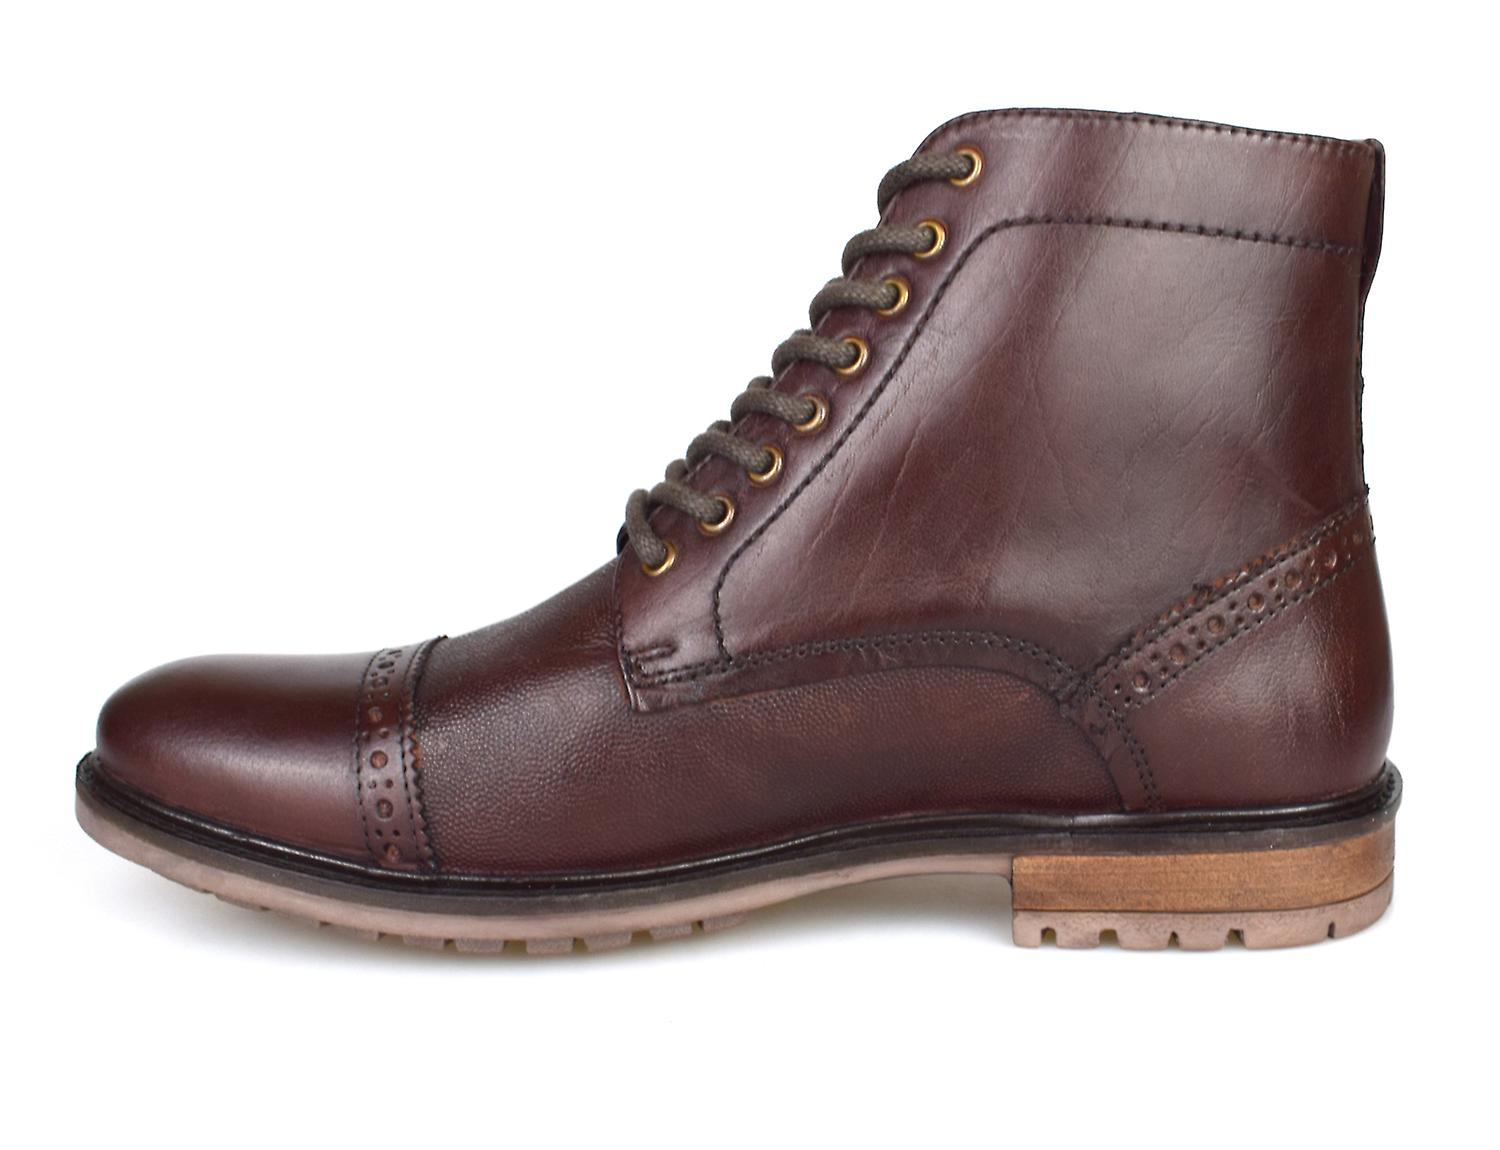 8e1d57b87a9 Silver Street Monmouth Oxblood Leather Mens Formal Boots